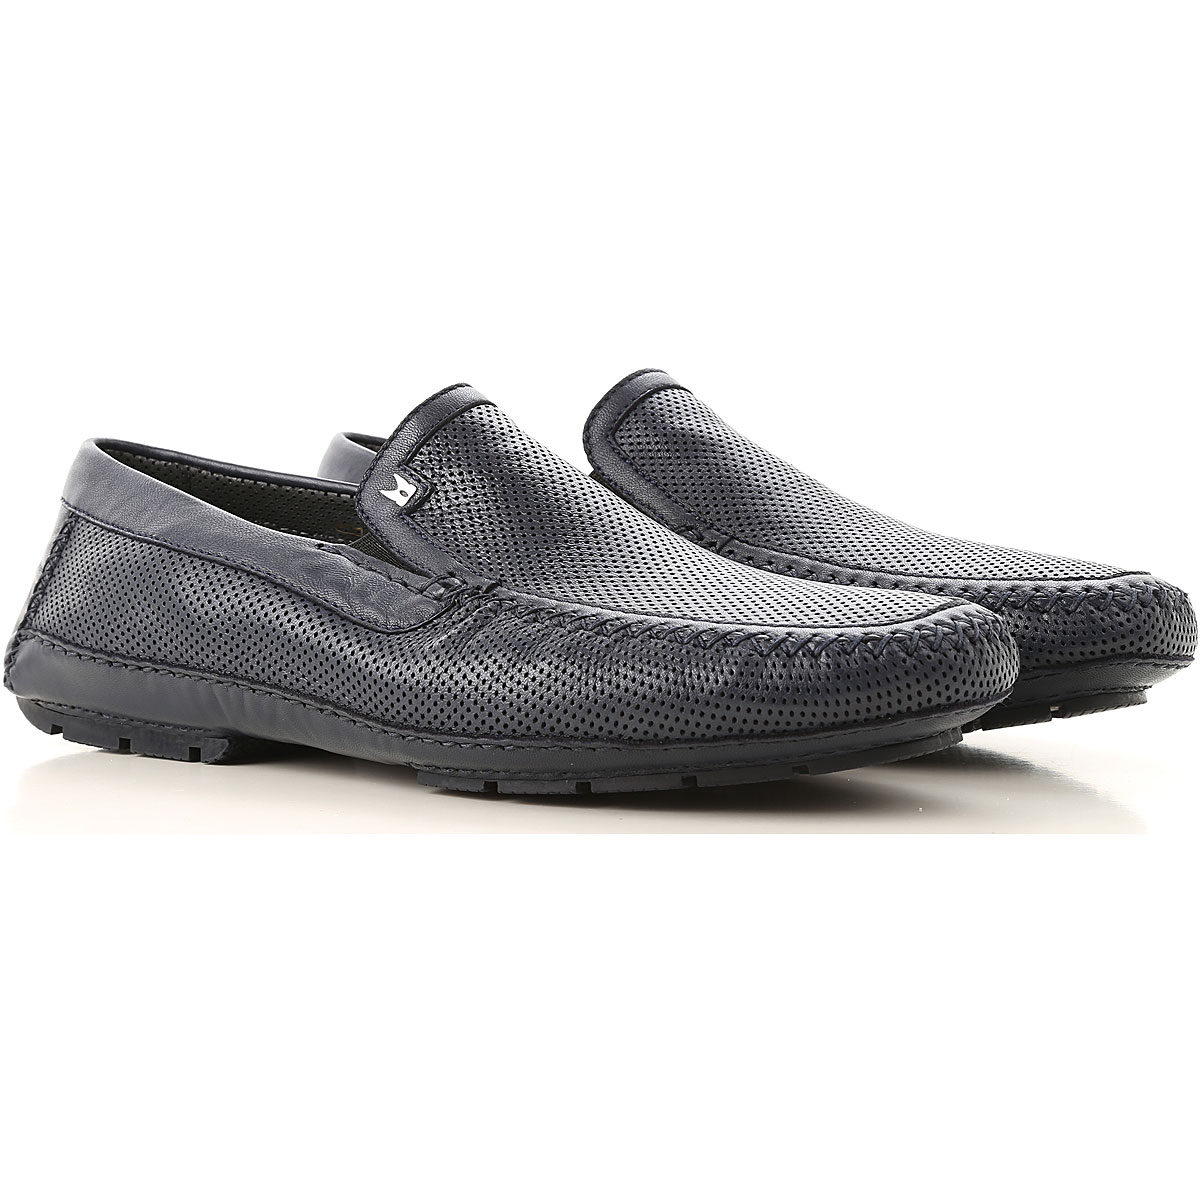 Moreschi Slip on Sneakers for Men On Sale, Blue, Leather, 2019, 11.5 13 6 7 7.5 8 8.5 9 9.5